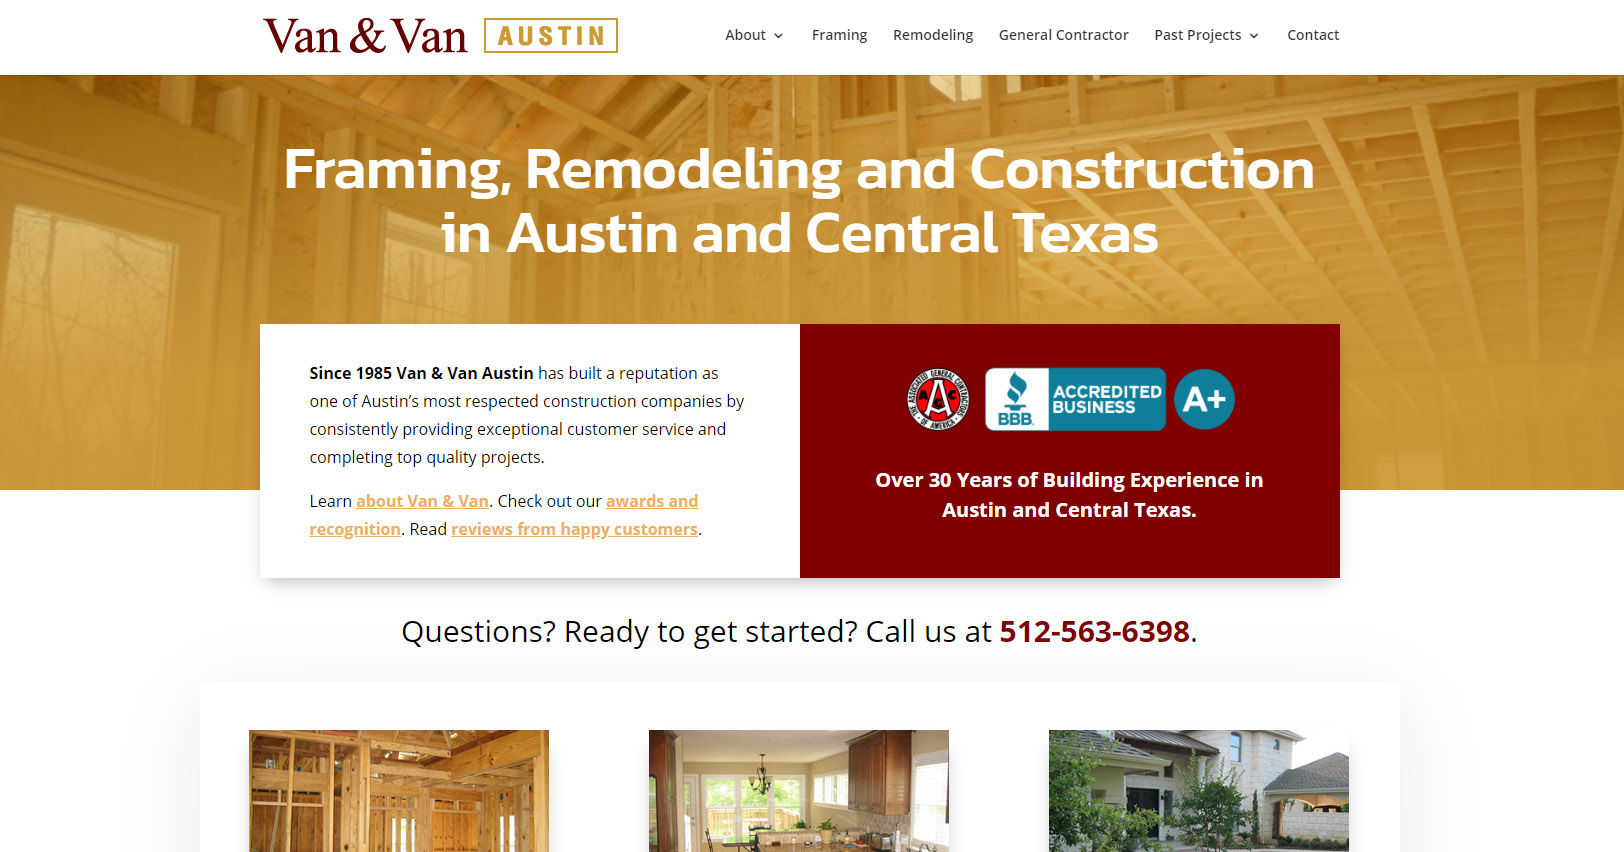 Van & Van web design update